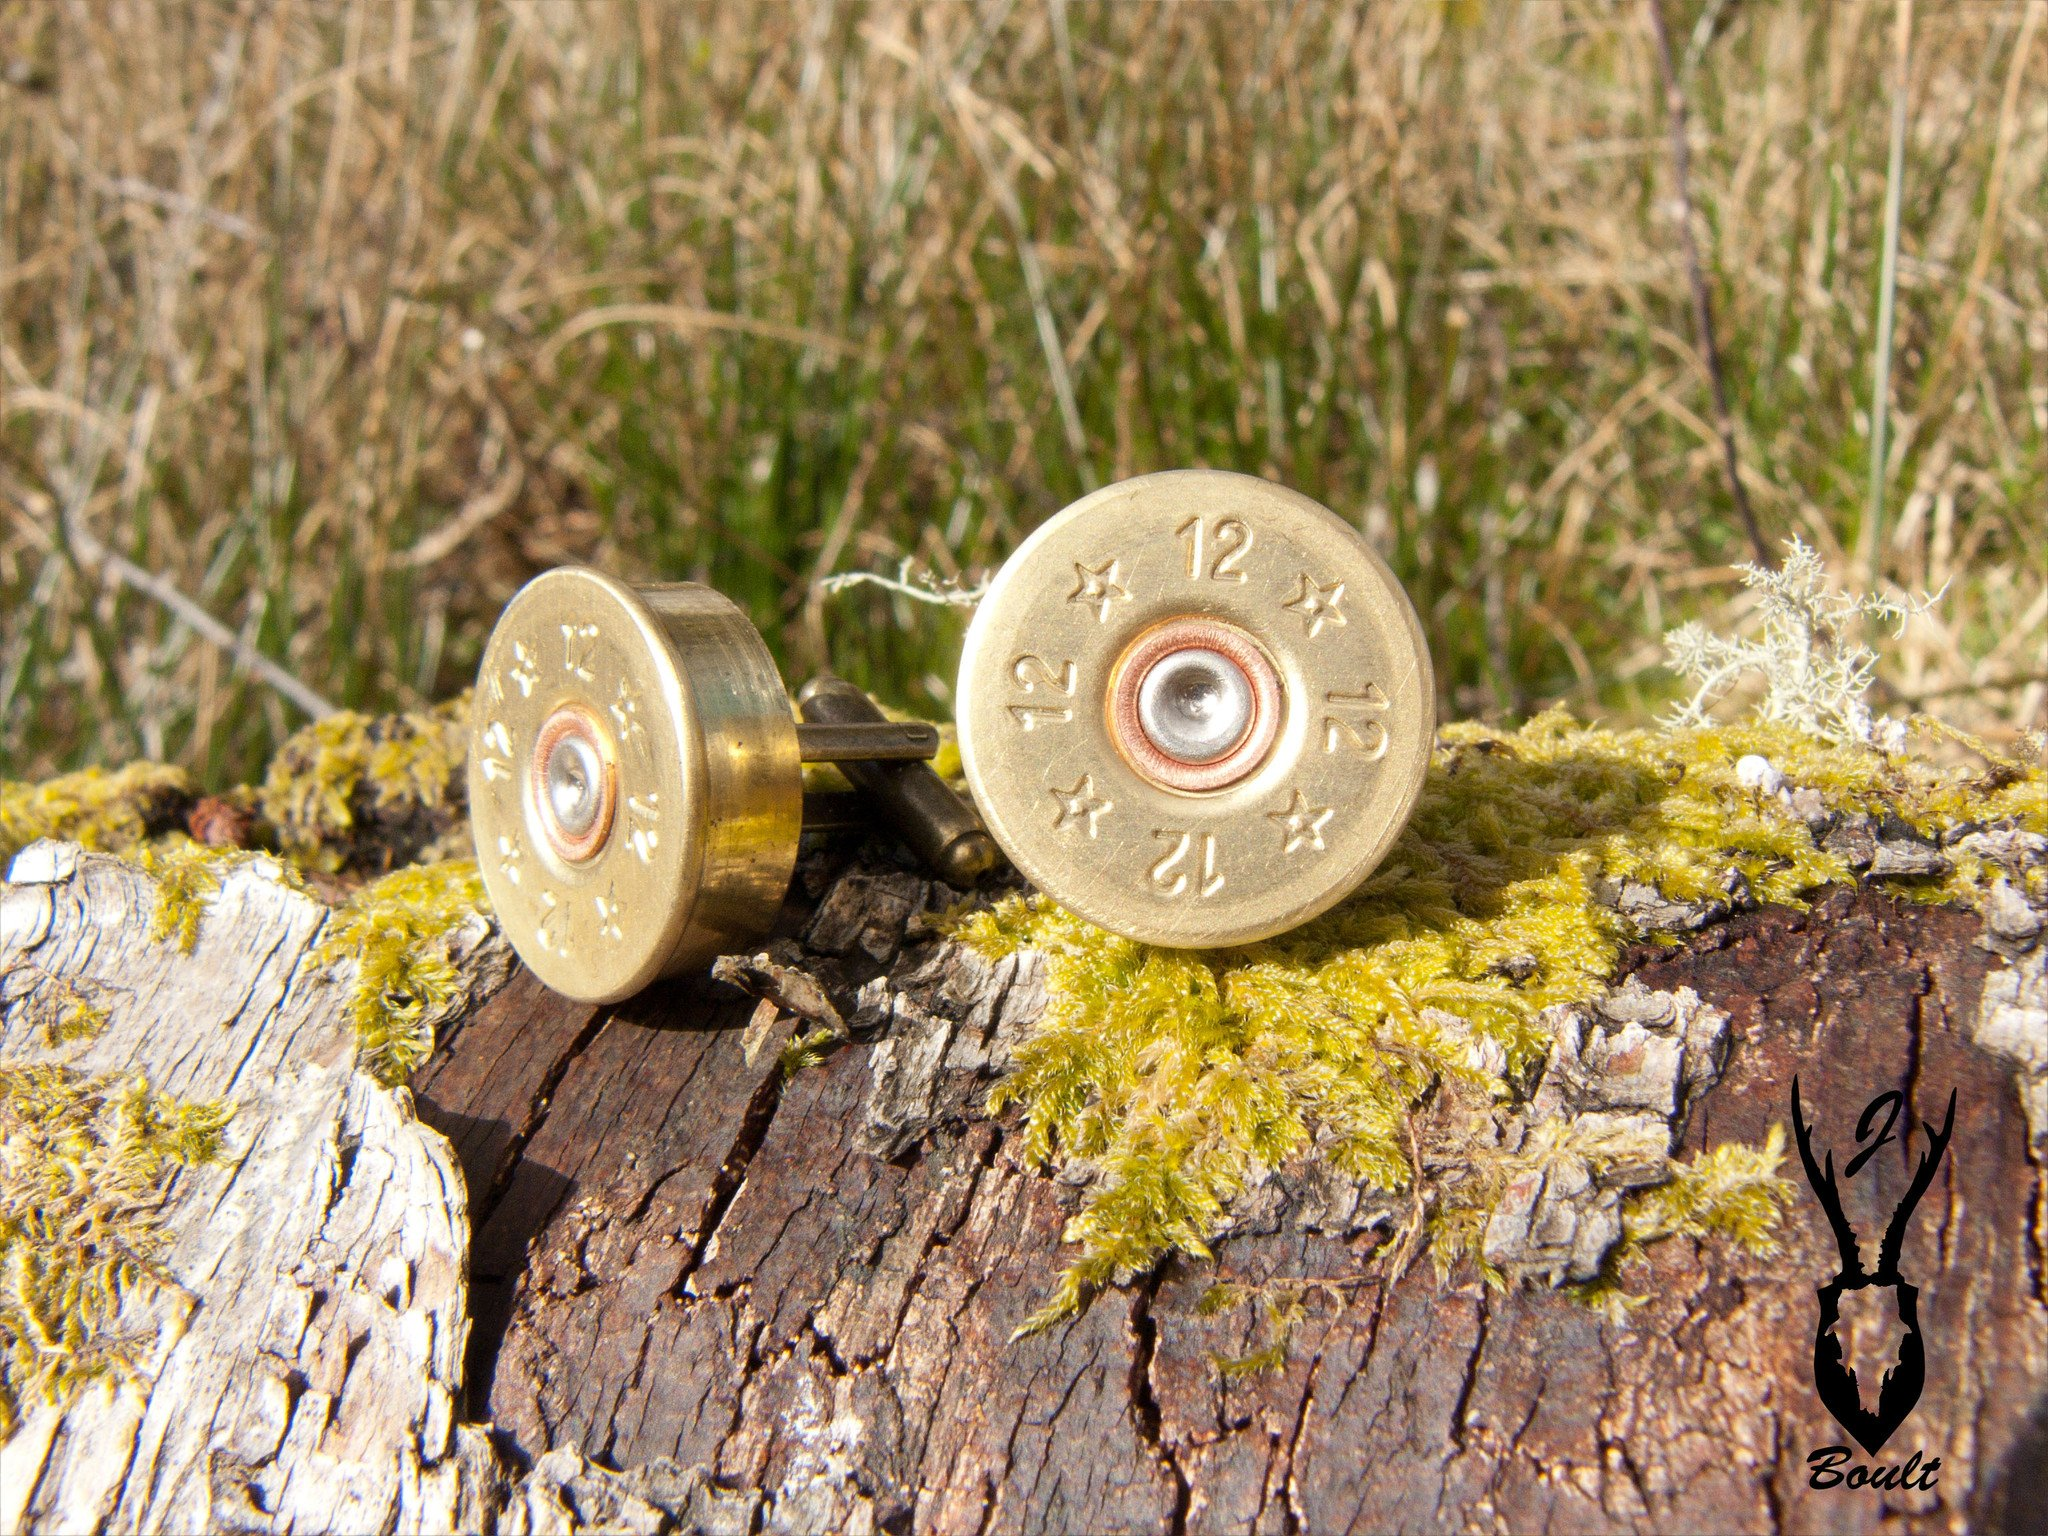 J. Boult Designs - Shotgun Cartridge Cufflinks, 12 bore